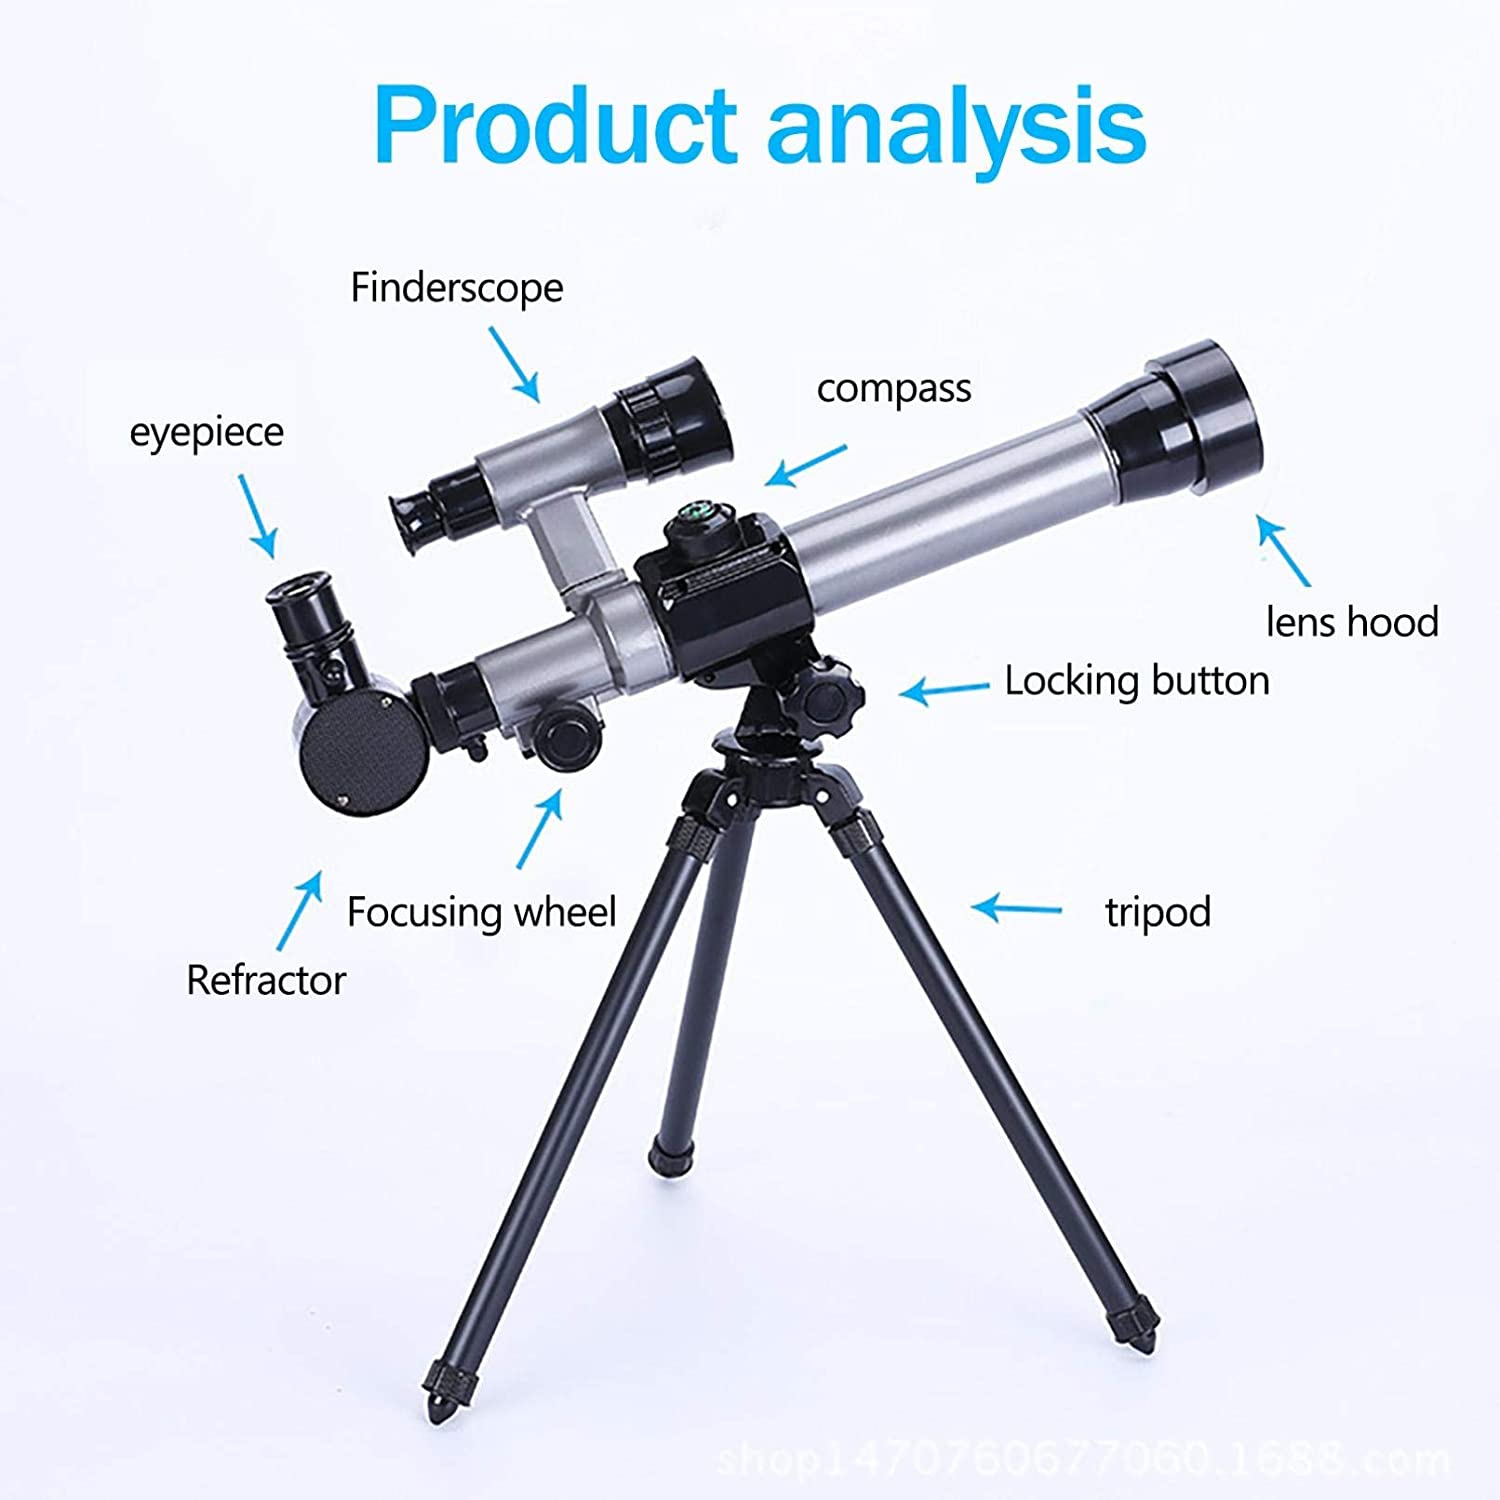 Owill Telescopes for Astronomy Beginners Kids B Astronomical Refractor Telescope with 20X//30X//40X Magnification Eyepieces Great Astronomy Gift for Kids to Explore Moon and Planets